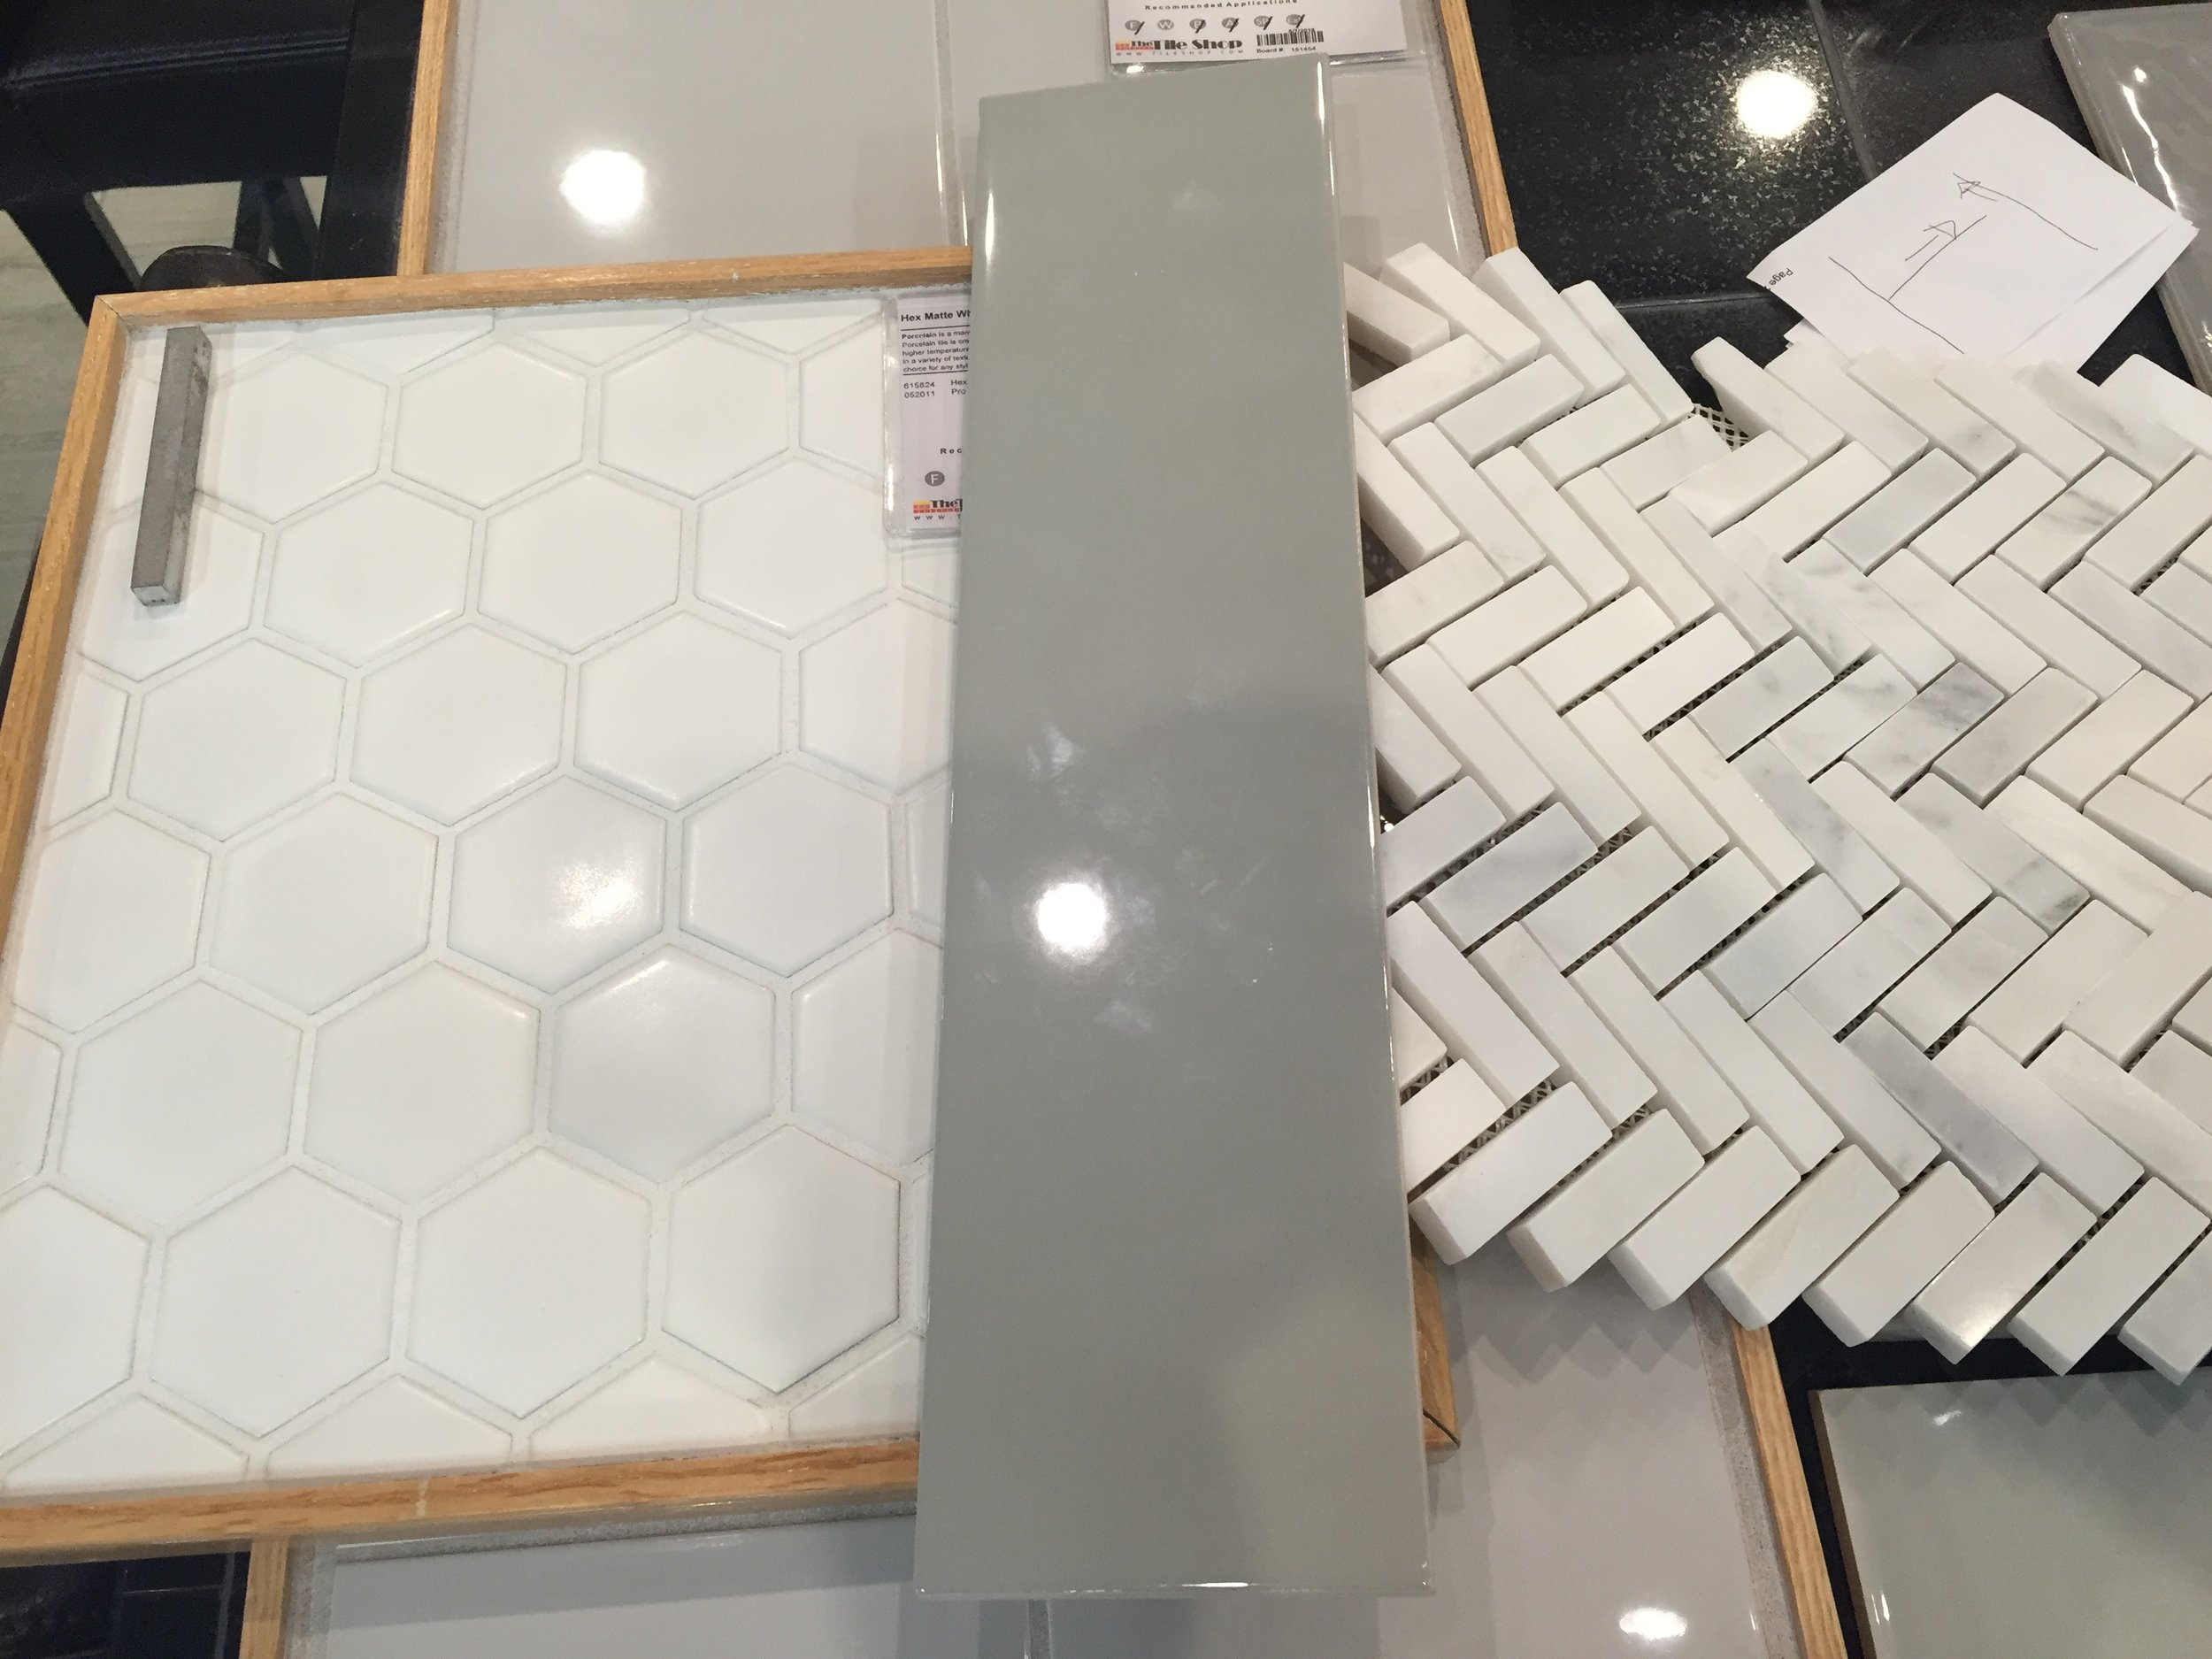 Master bathroom tile selection from The Tile Shop and Home Depot.